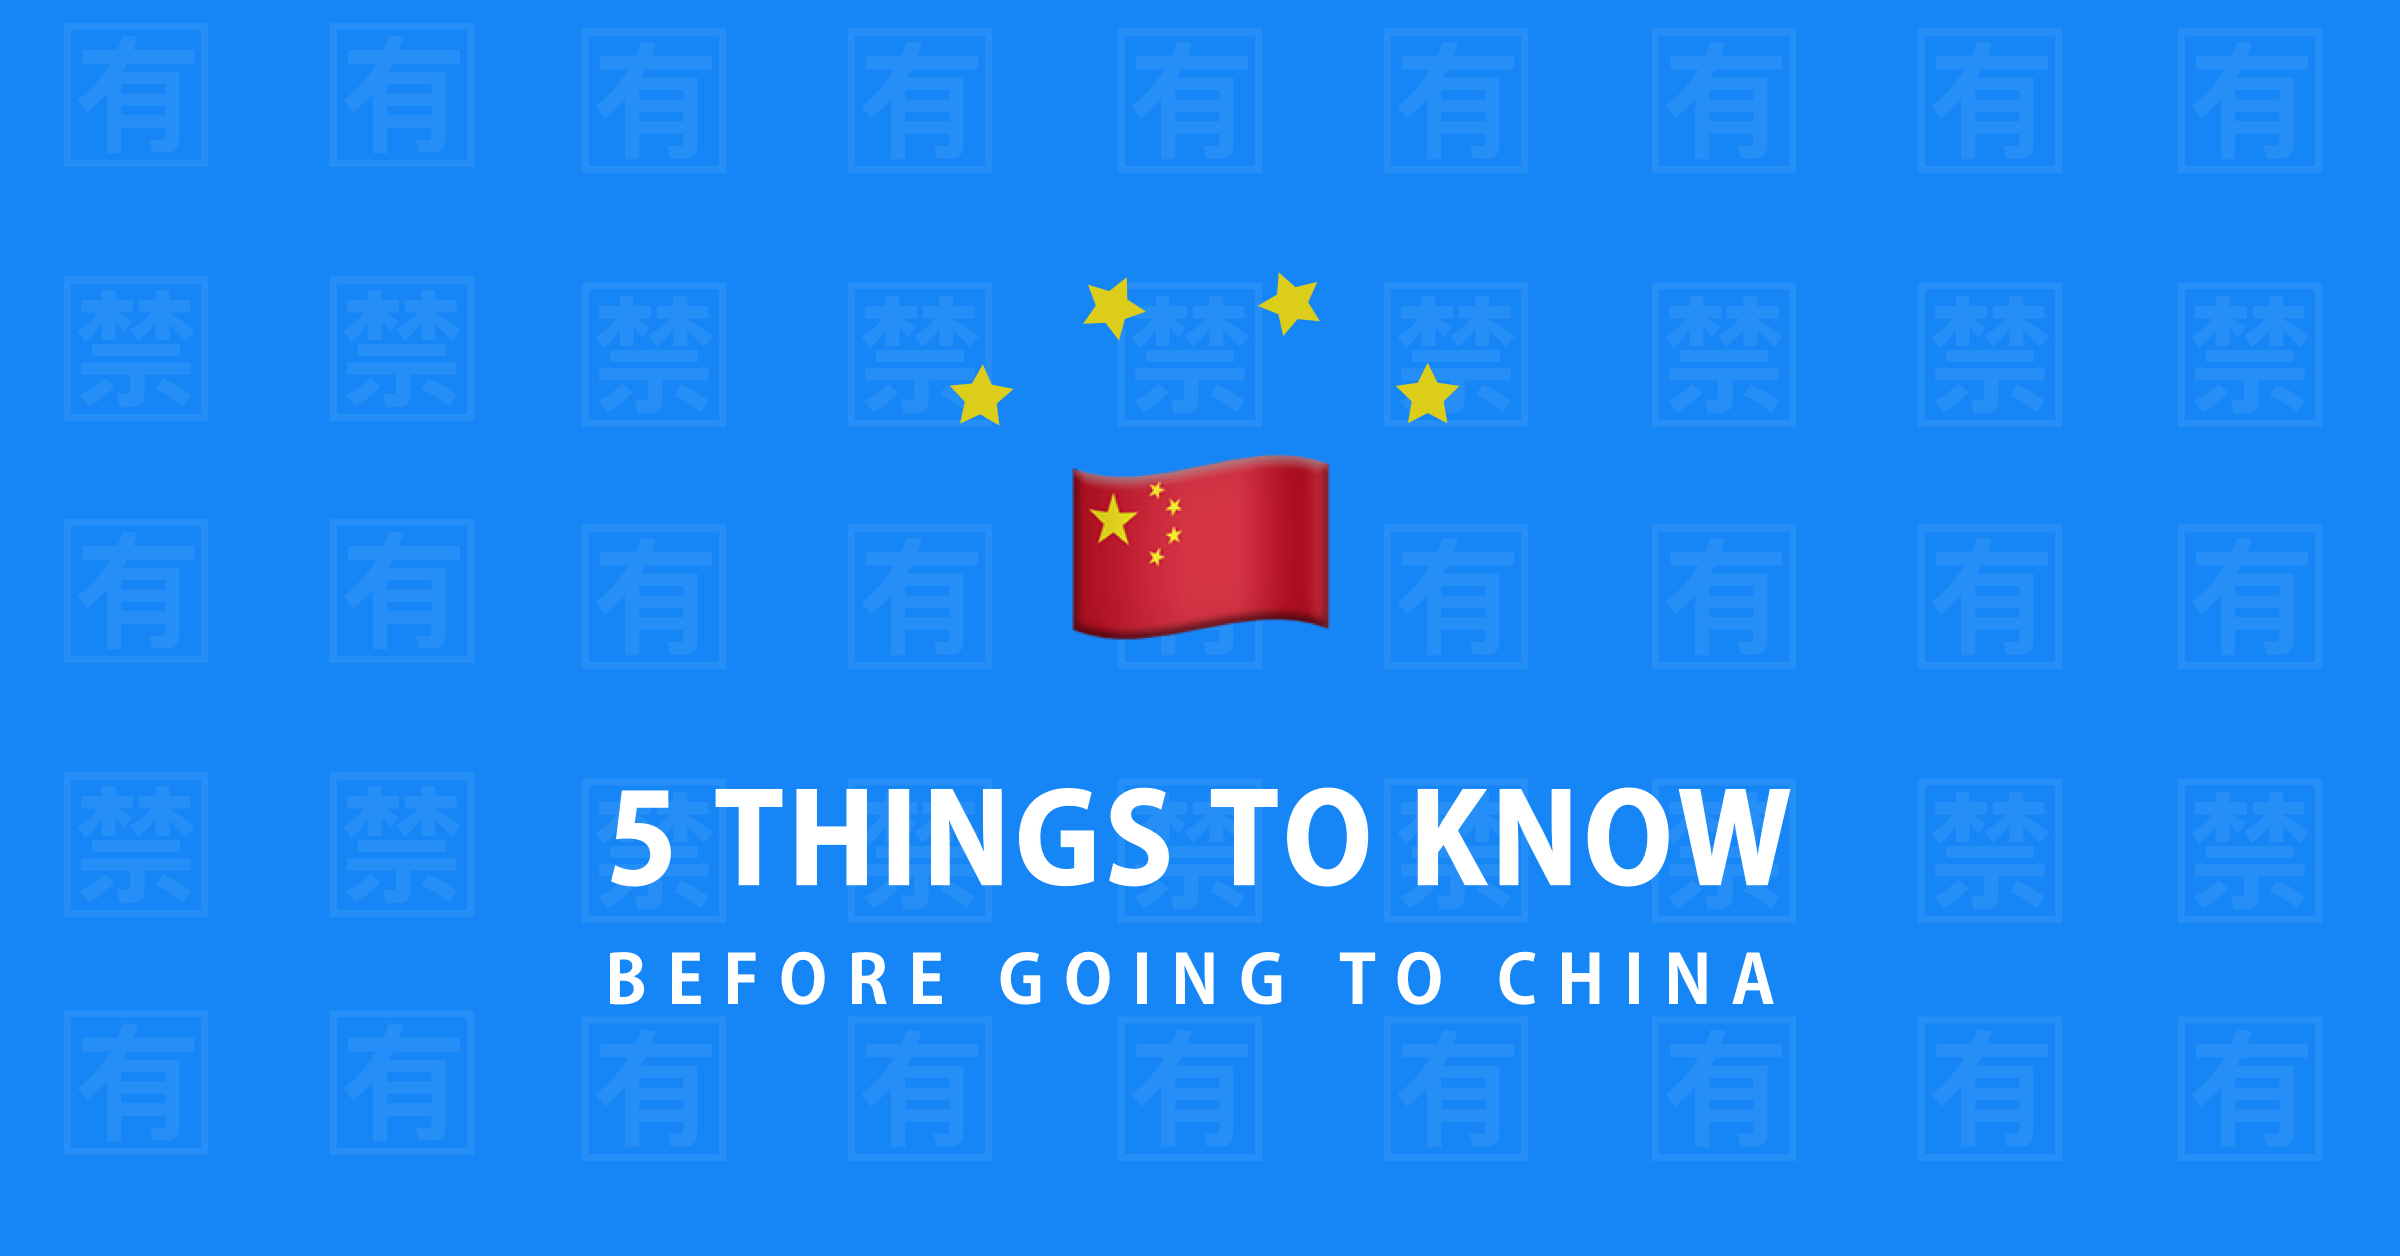 5 etiquette tips for business travellers heading to China